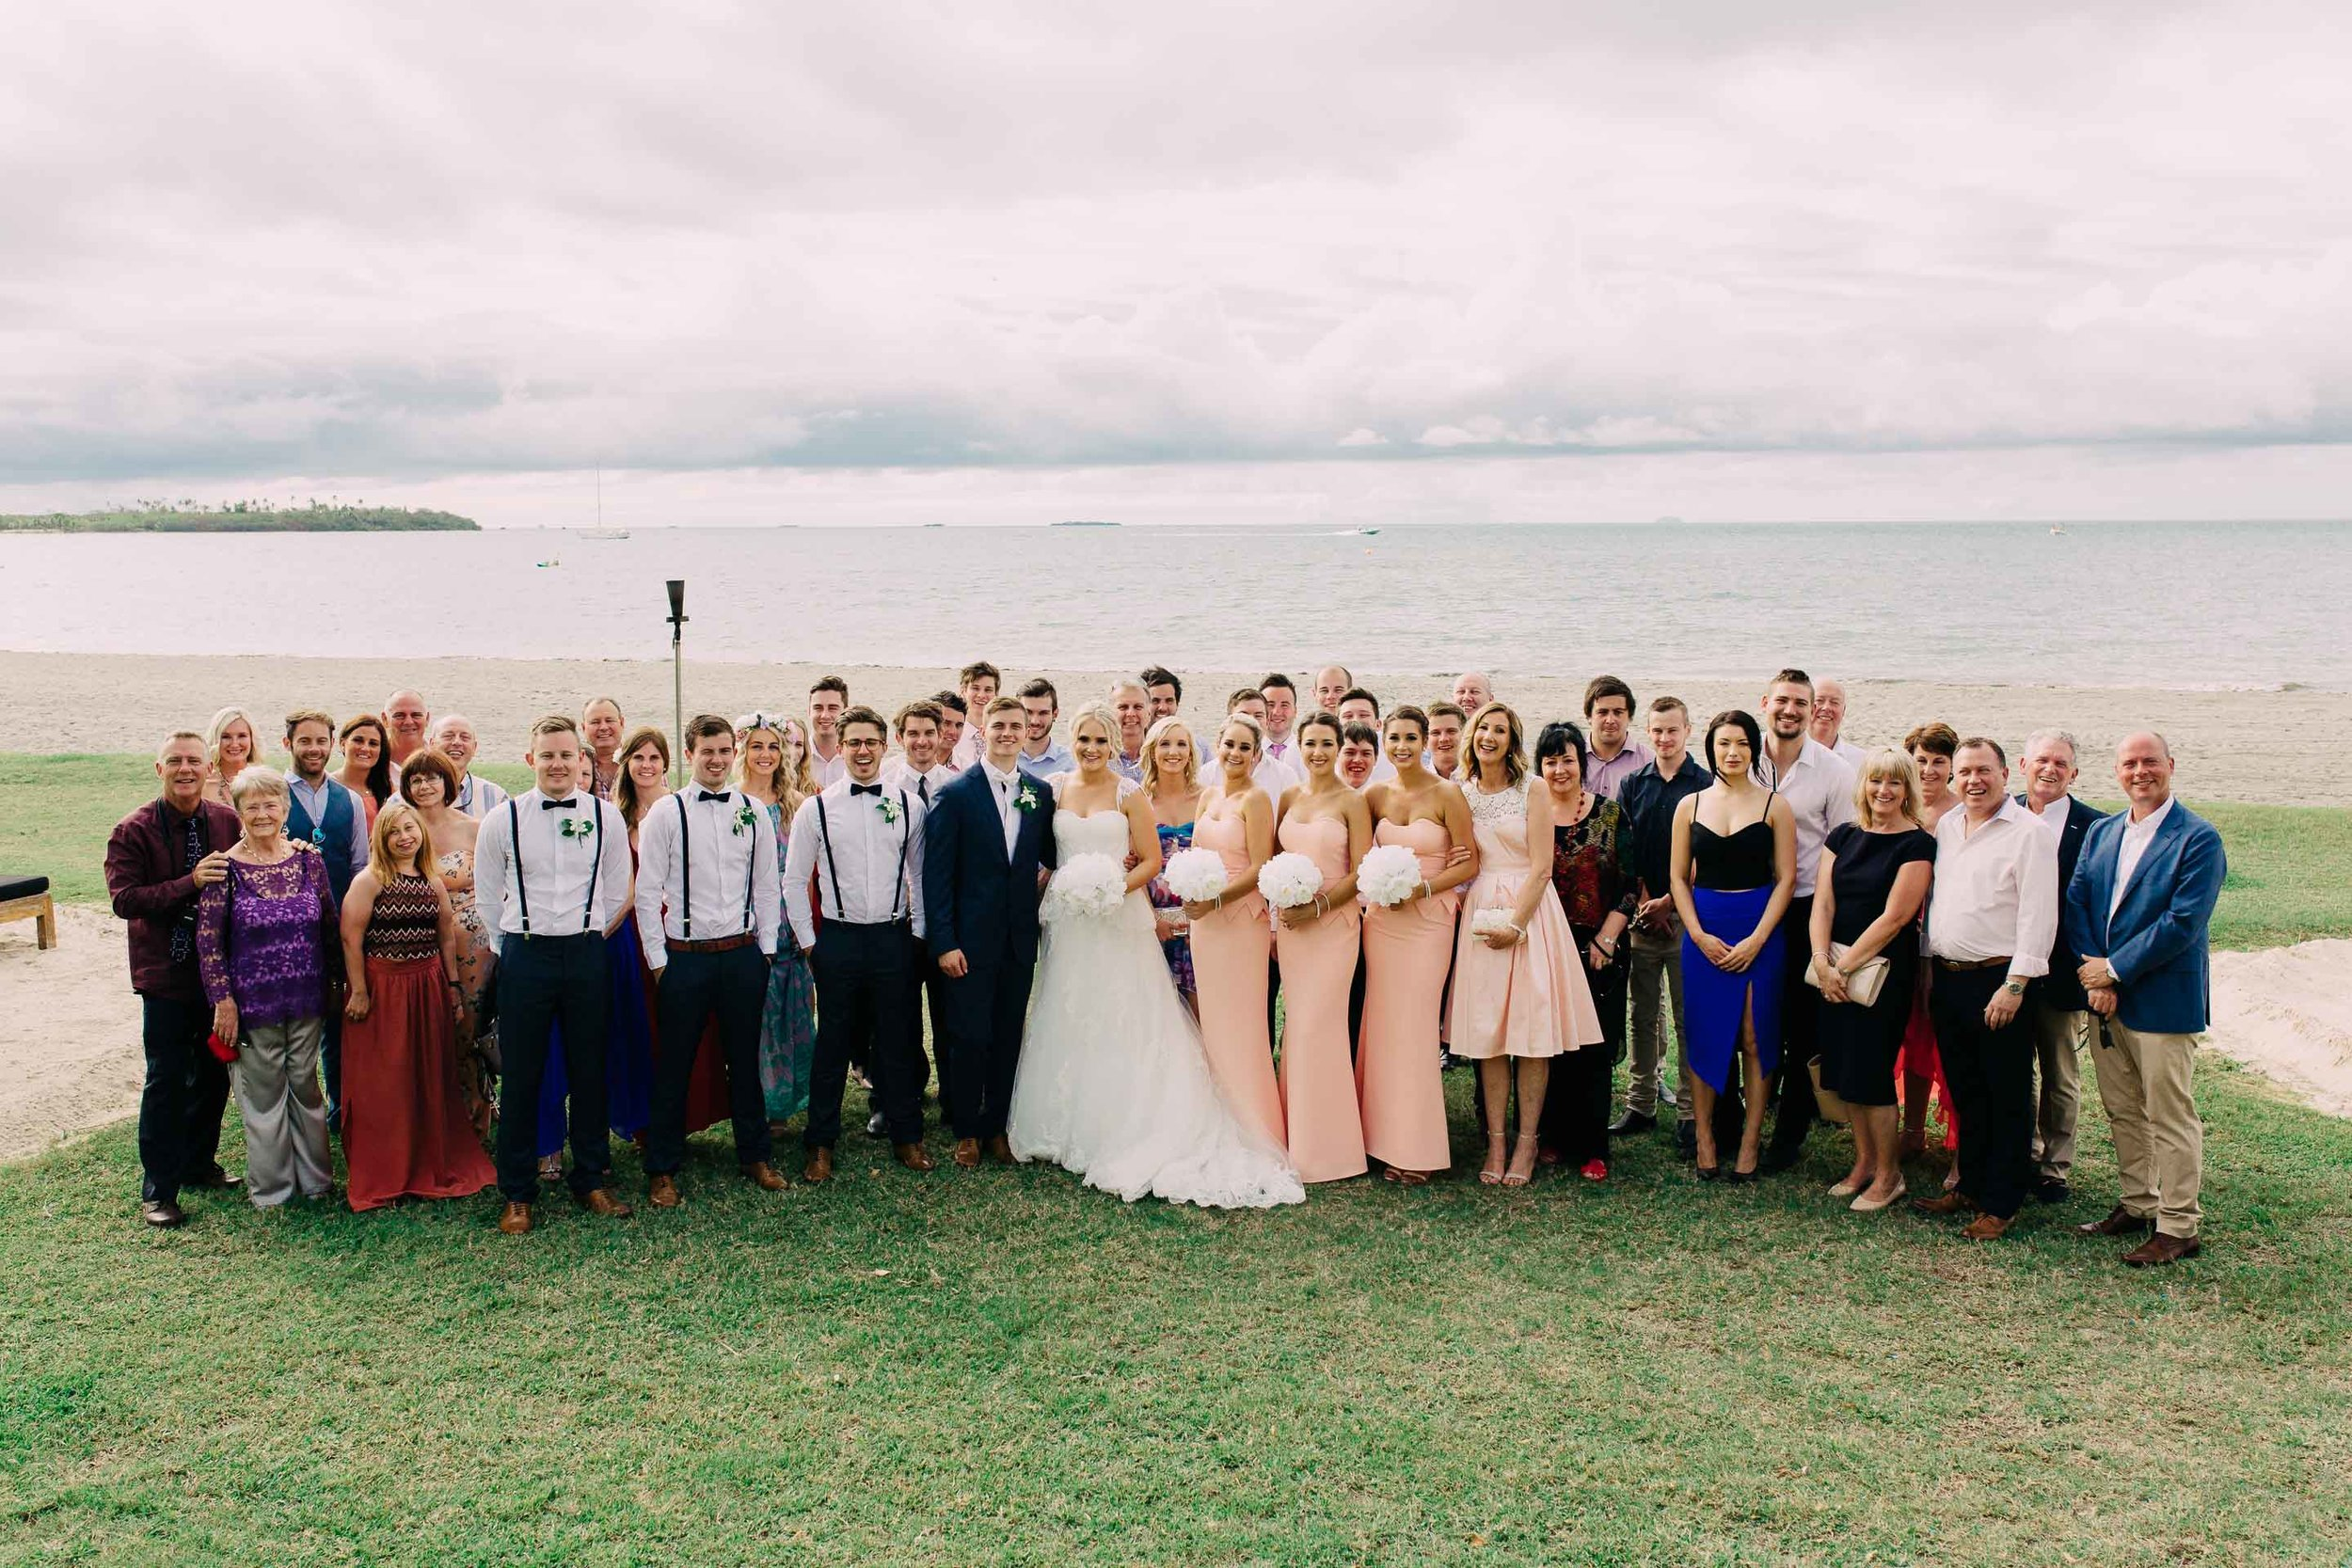 Entire wedding party gather for a group photo after the Fiji beach ceremony.